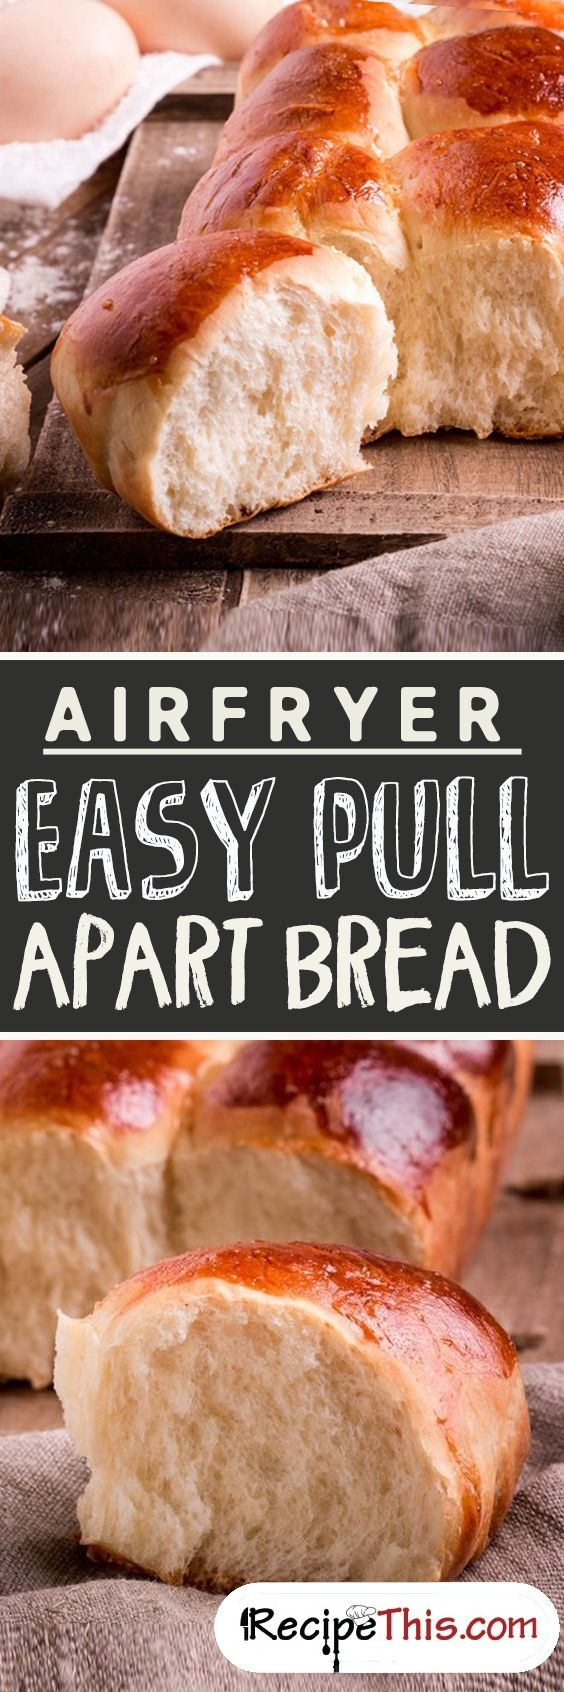 Airfryer Easy Pull Apart Bread